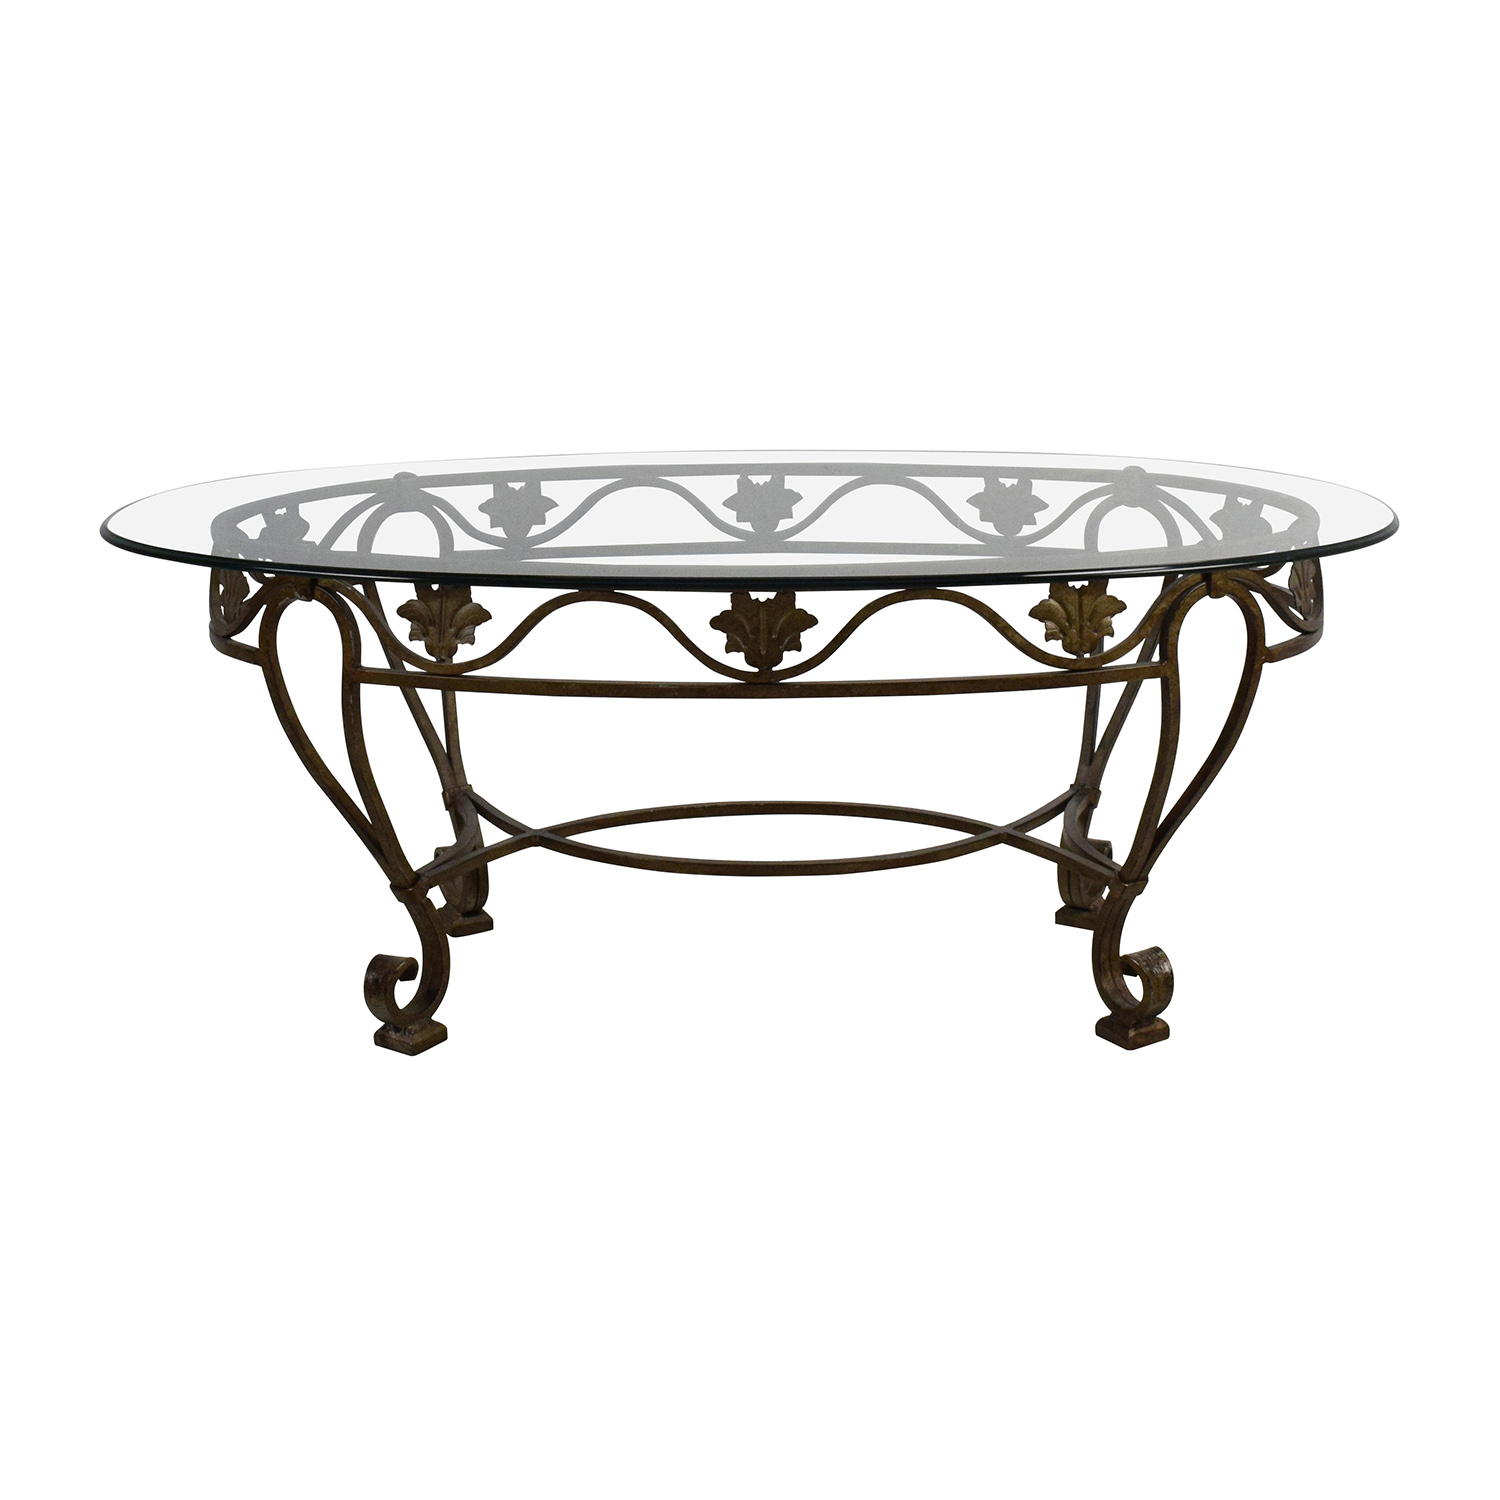 Antique Coffee Table.90 Off Iron Cast Glass Top Antique Coffee Table Tables